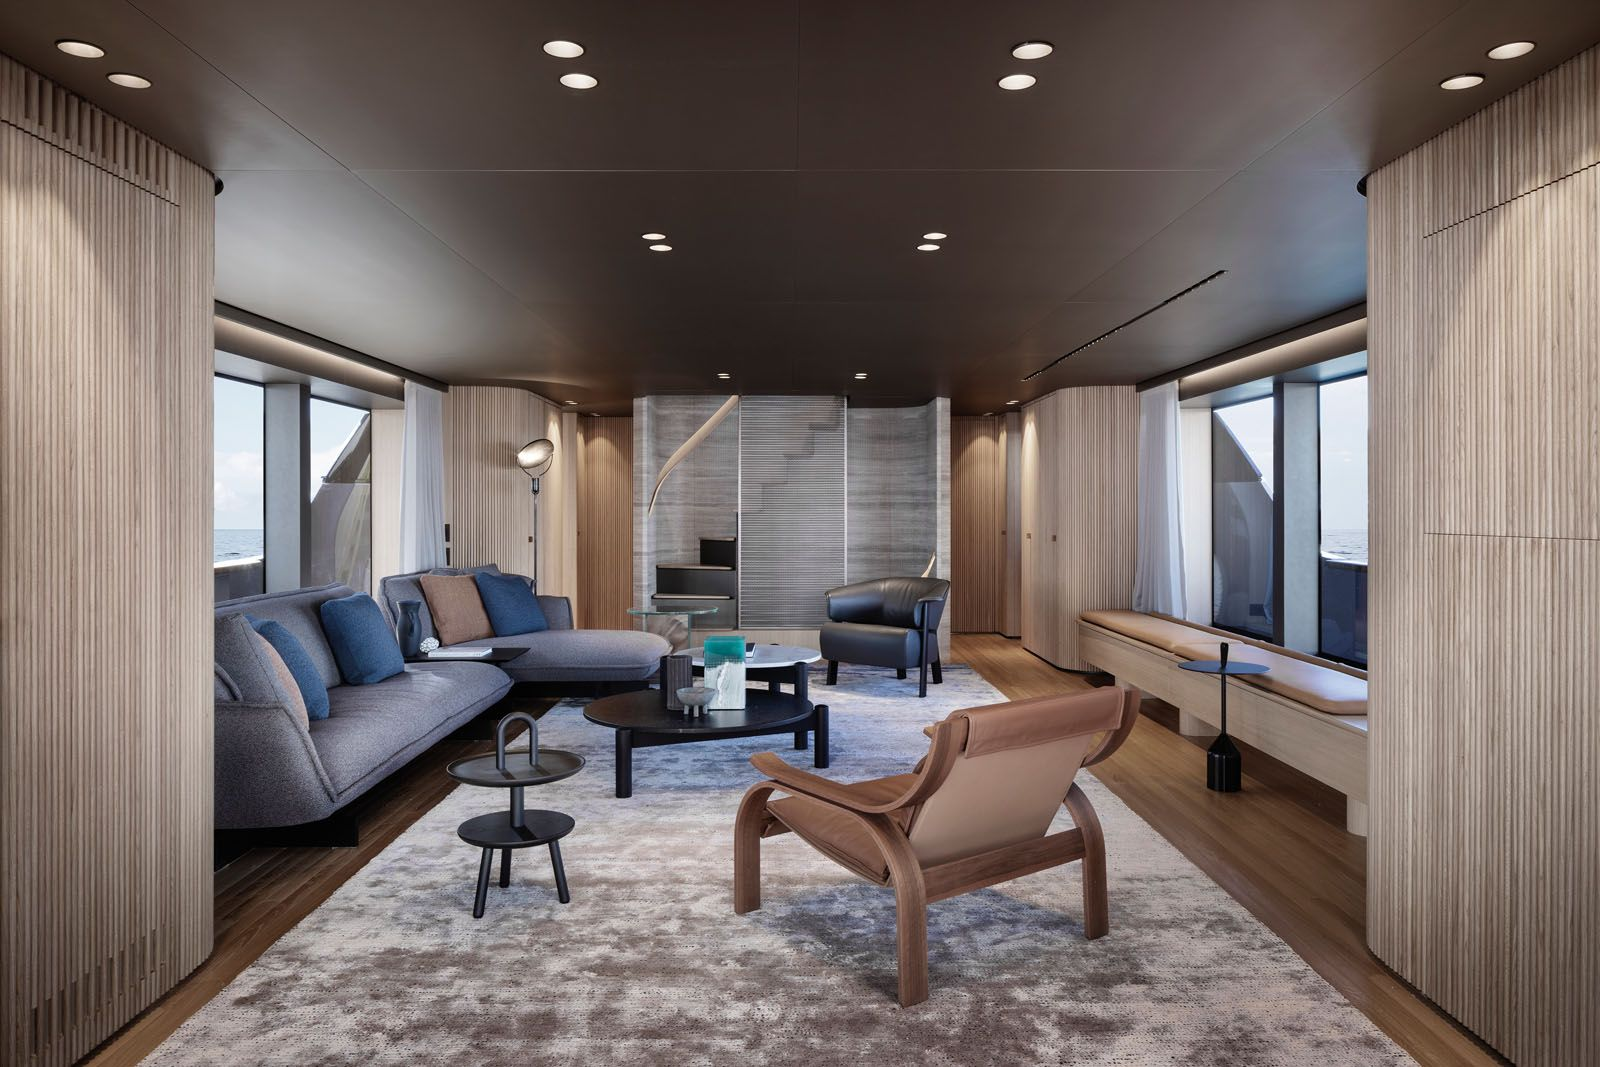 Architect Patricia Urquiola Designs A Sanlorenzo Yacht Made For The Nomadic Life